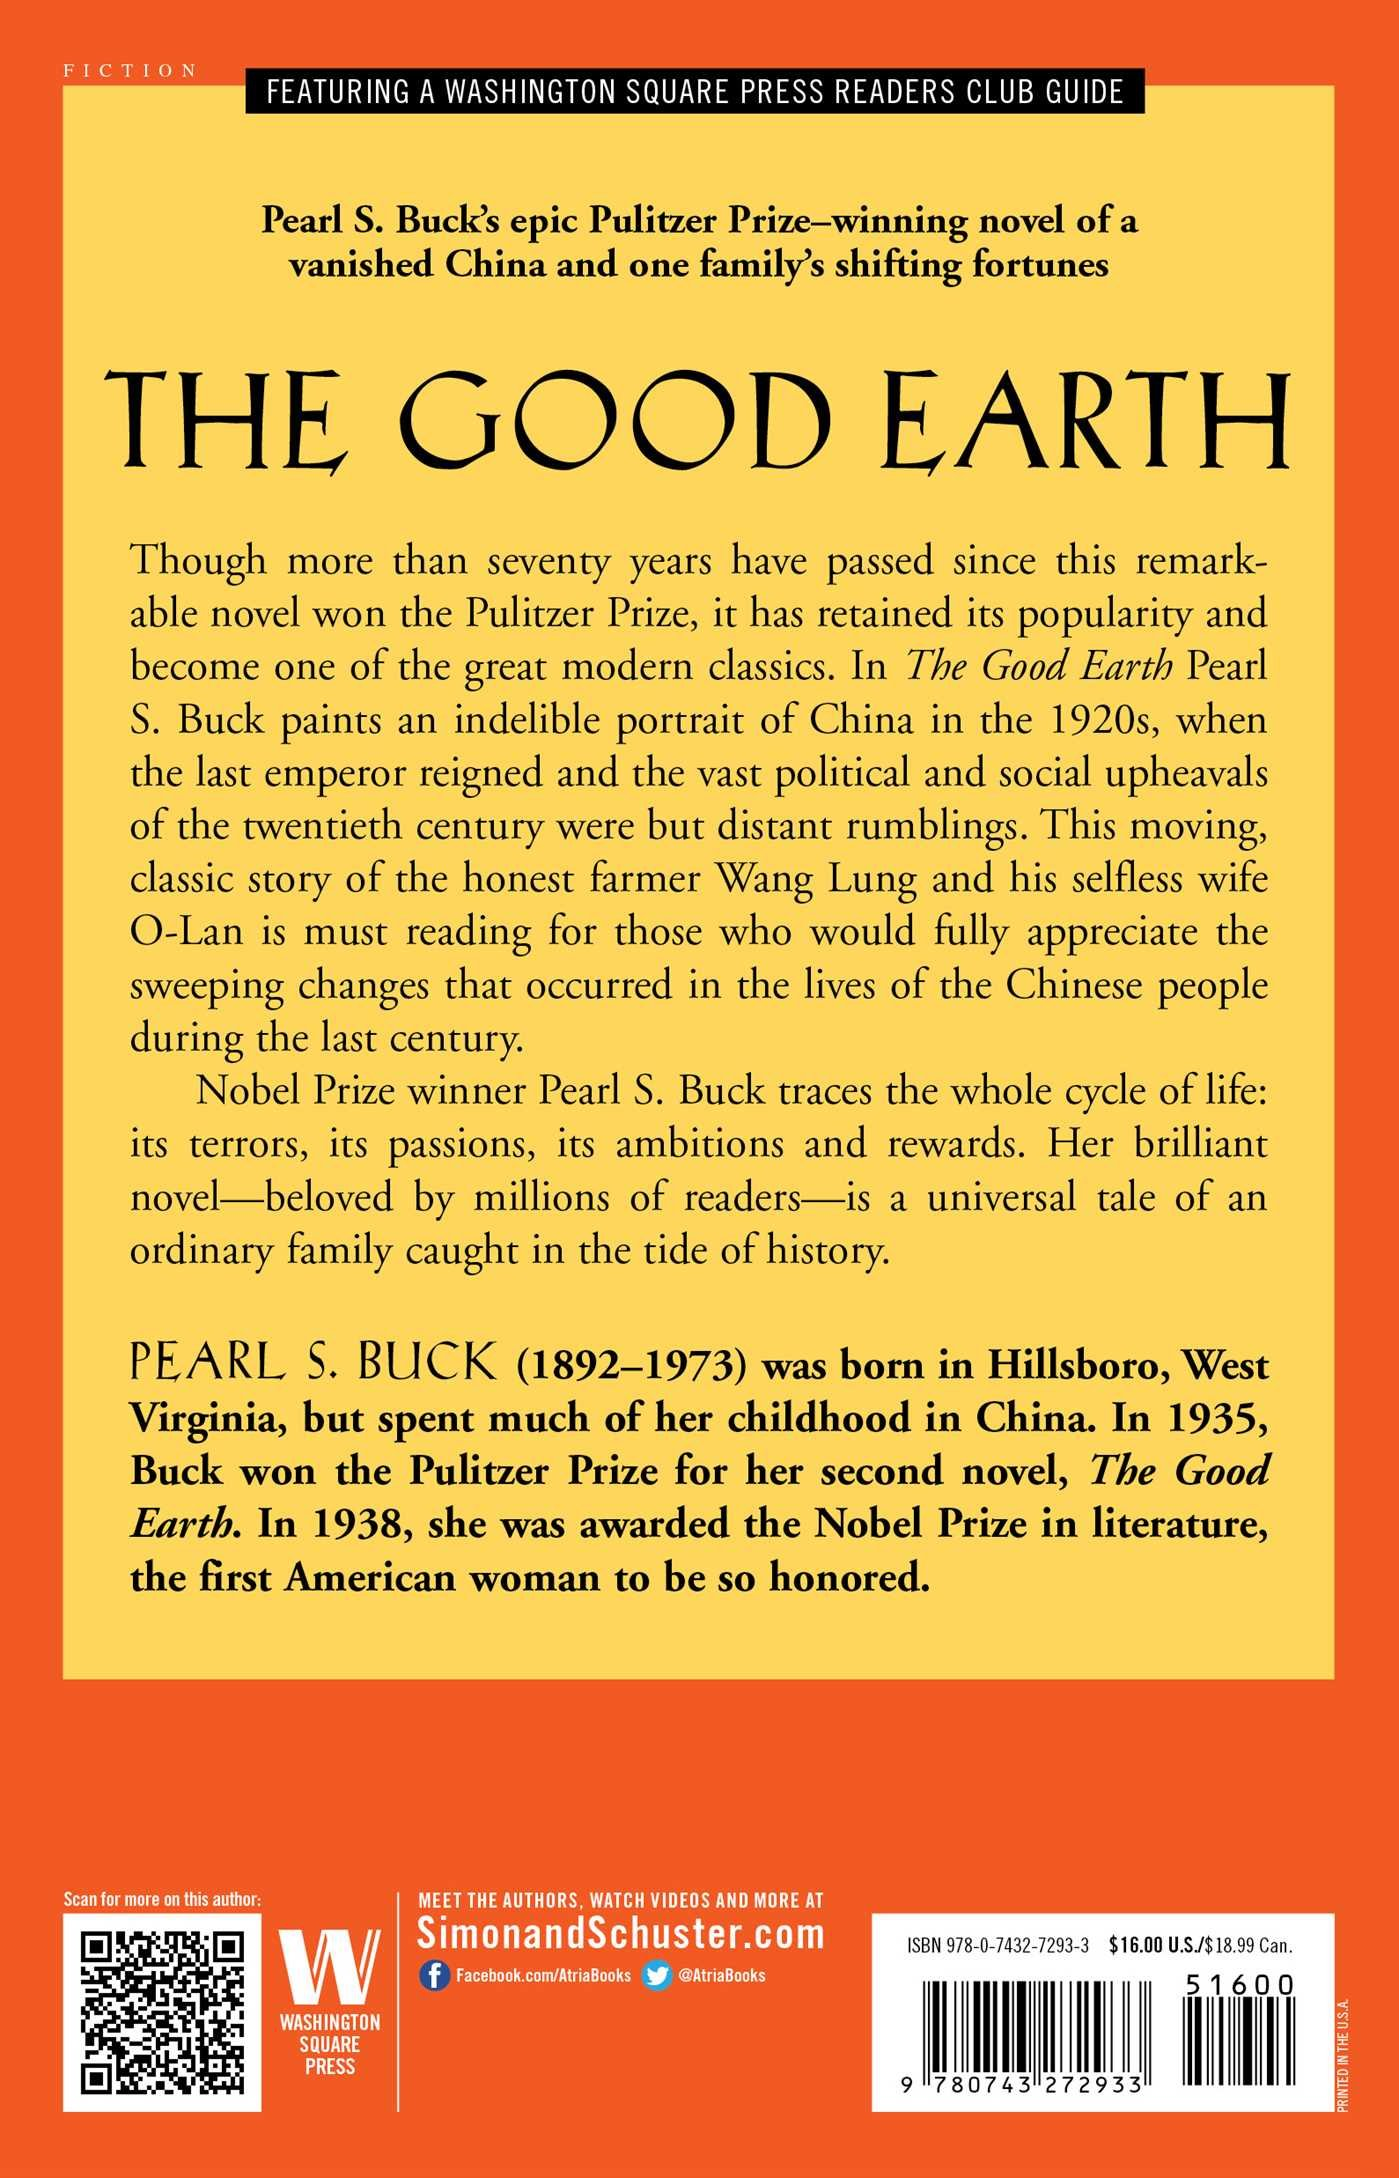 the good earth oprah s book club pearl s buck 9780743272933 the good earth oprah s book club pearl s buck 9780743272933 amazon com books